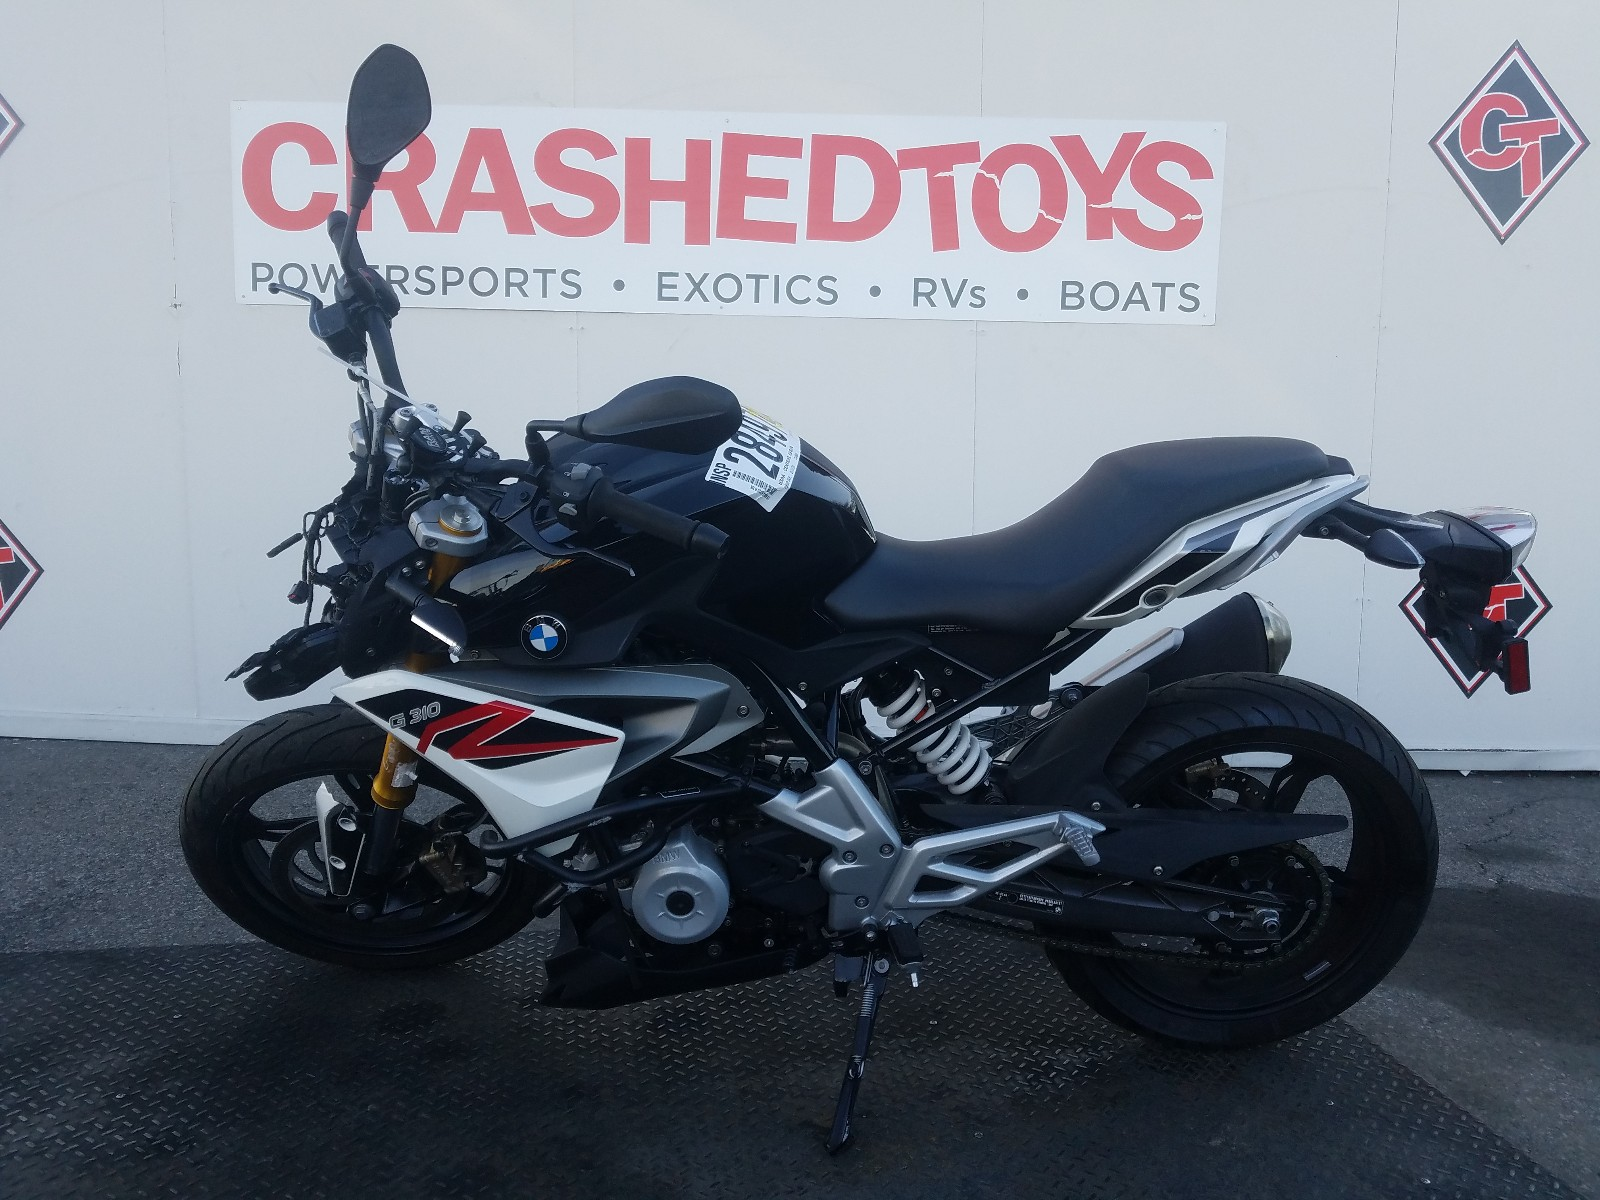 WB30G1105KR857854 - 2019 Bmw G310 R 1 [Angle] View